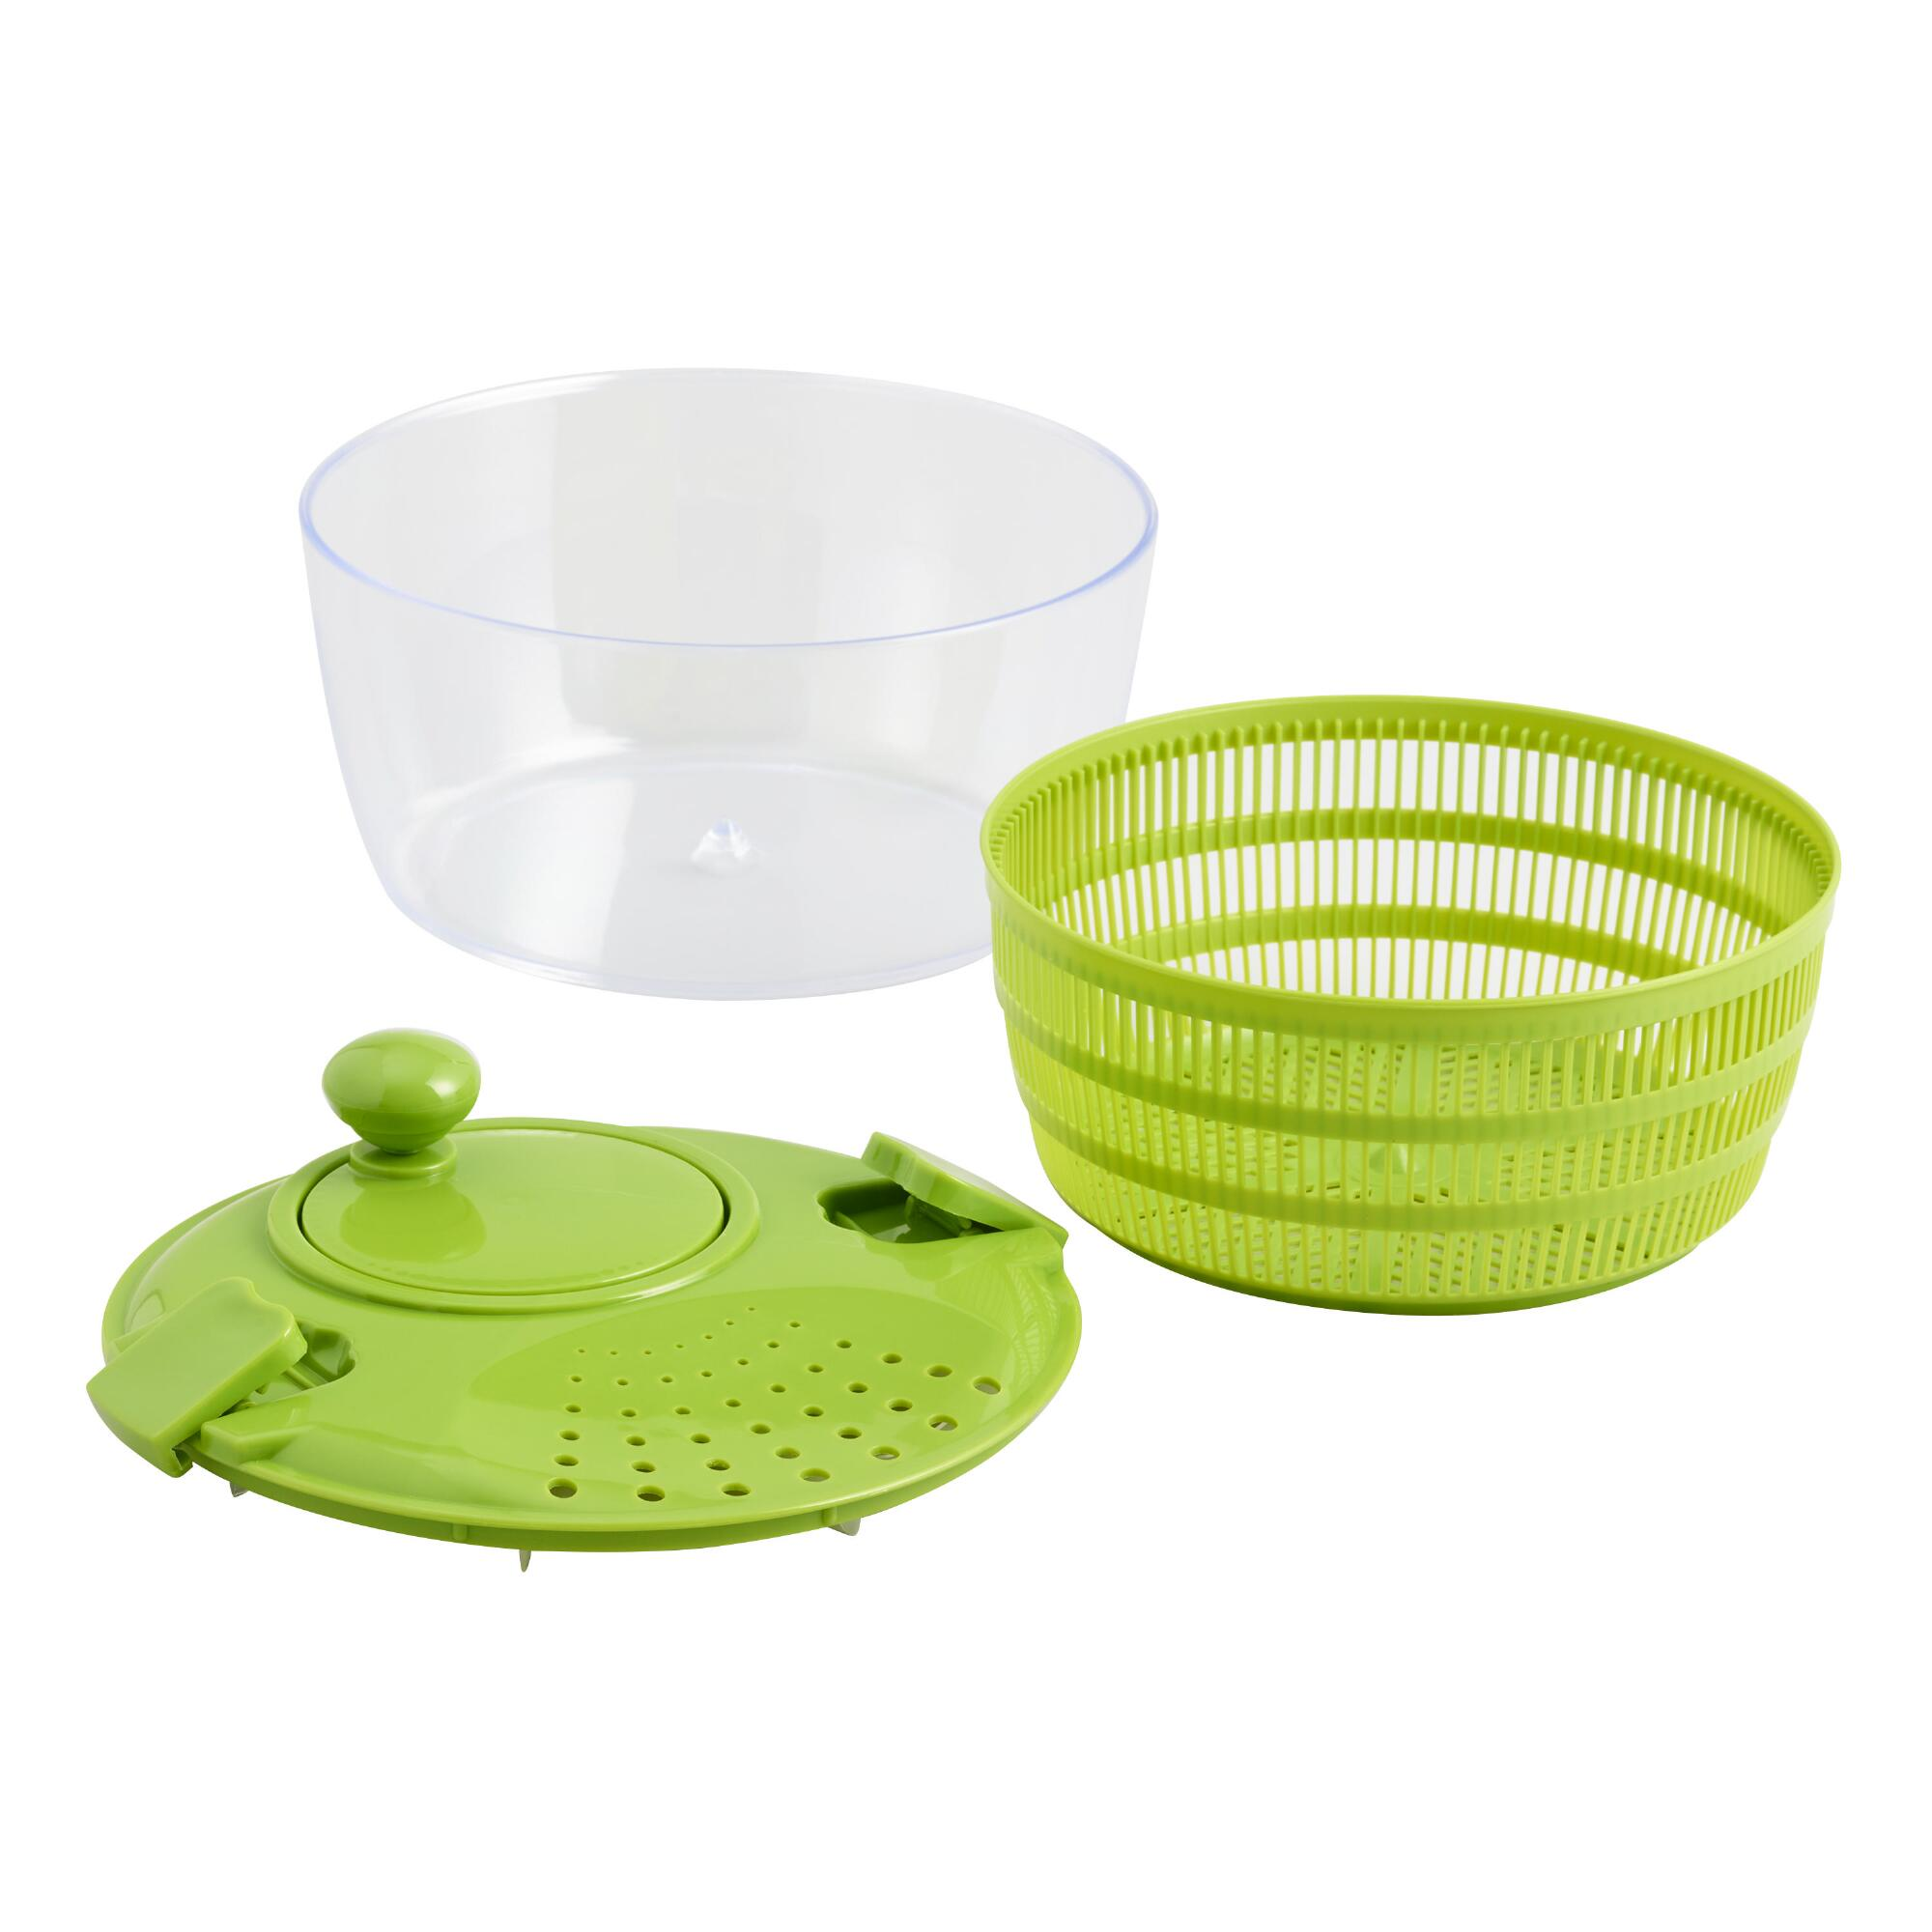 Salad Spinner: Green - Plastic by World Market